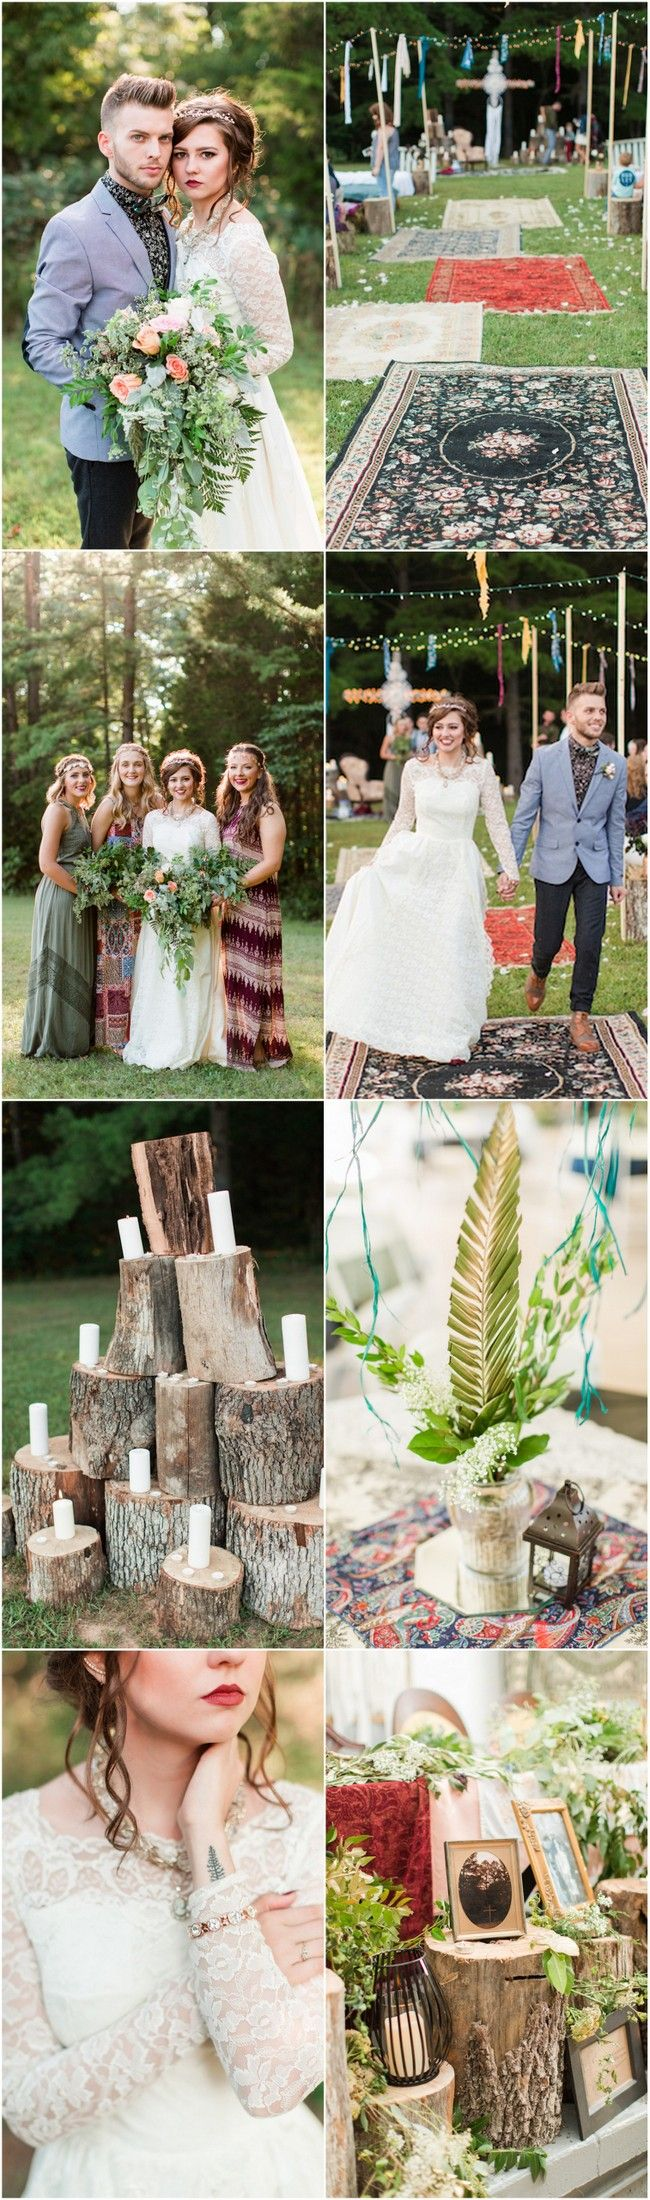 Their boho sunset campground wedding had doilies, dreamcatchers, mismatched rugs, tapestries, strings of twinkle lights overhead, candles & a Breaking Dawn inspired, vintage 1950s wedding dress! via @confettidaydreams